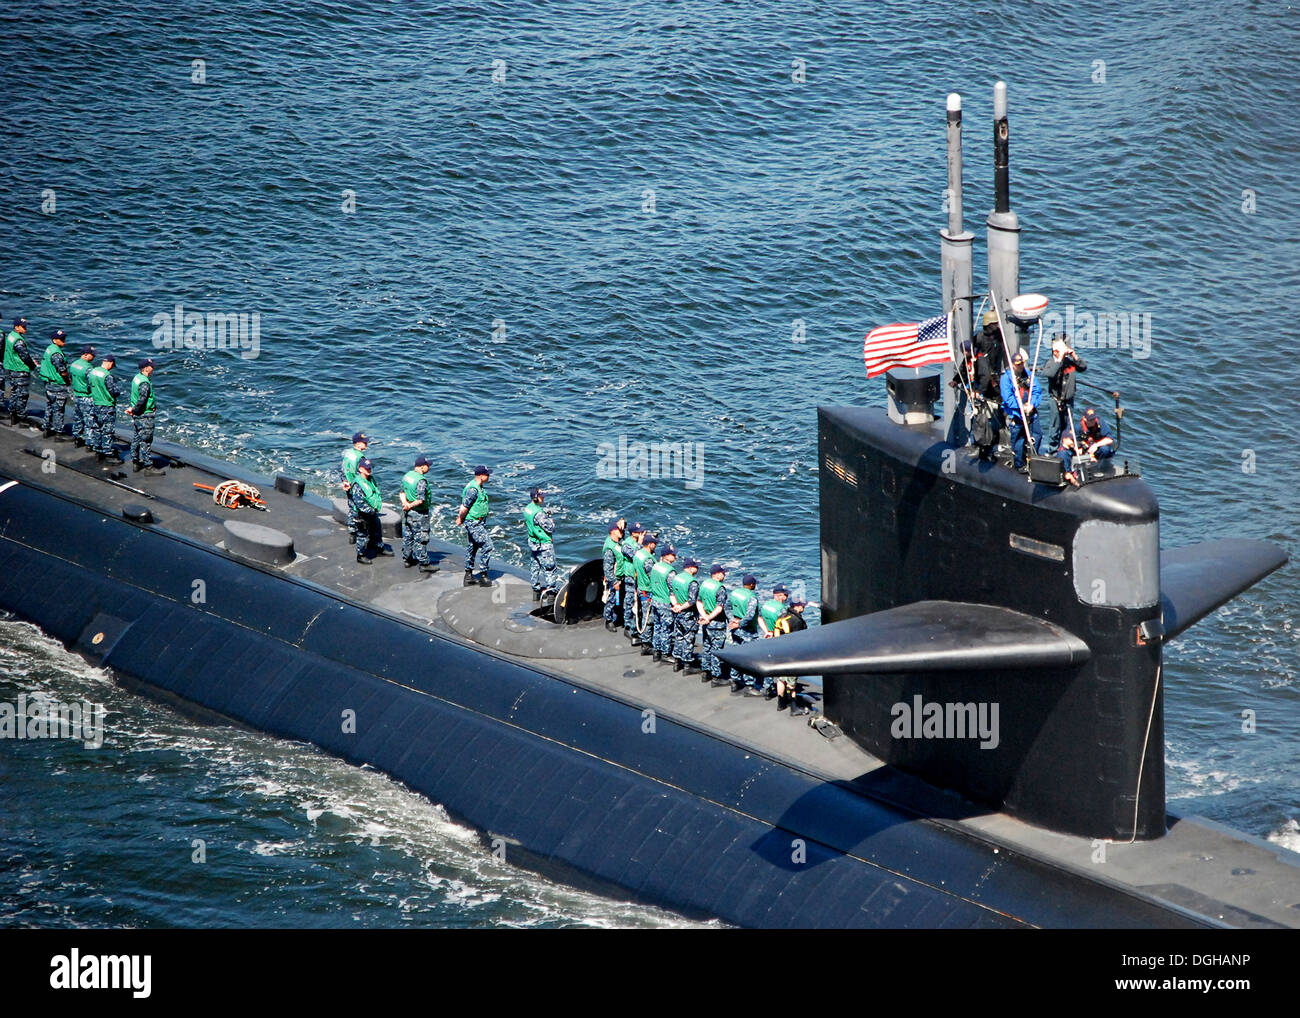 US Navy Los Angeles-class attack submarine USS Dallas departs Naval Submarine Base New London May 3, 2013 in Groton, CT. - Stock Image